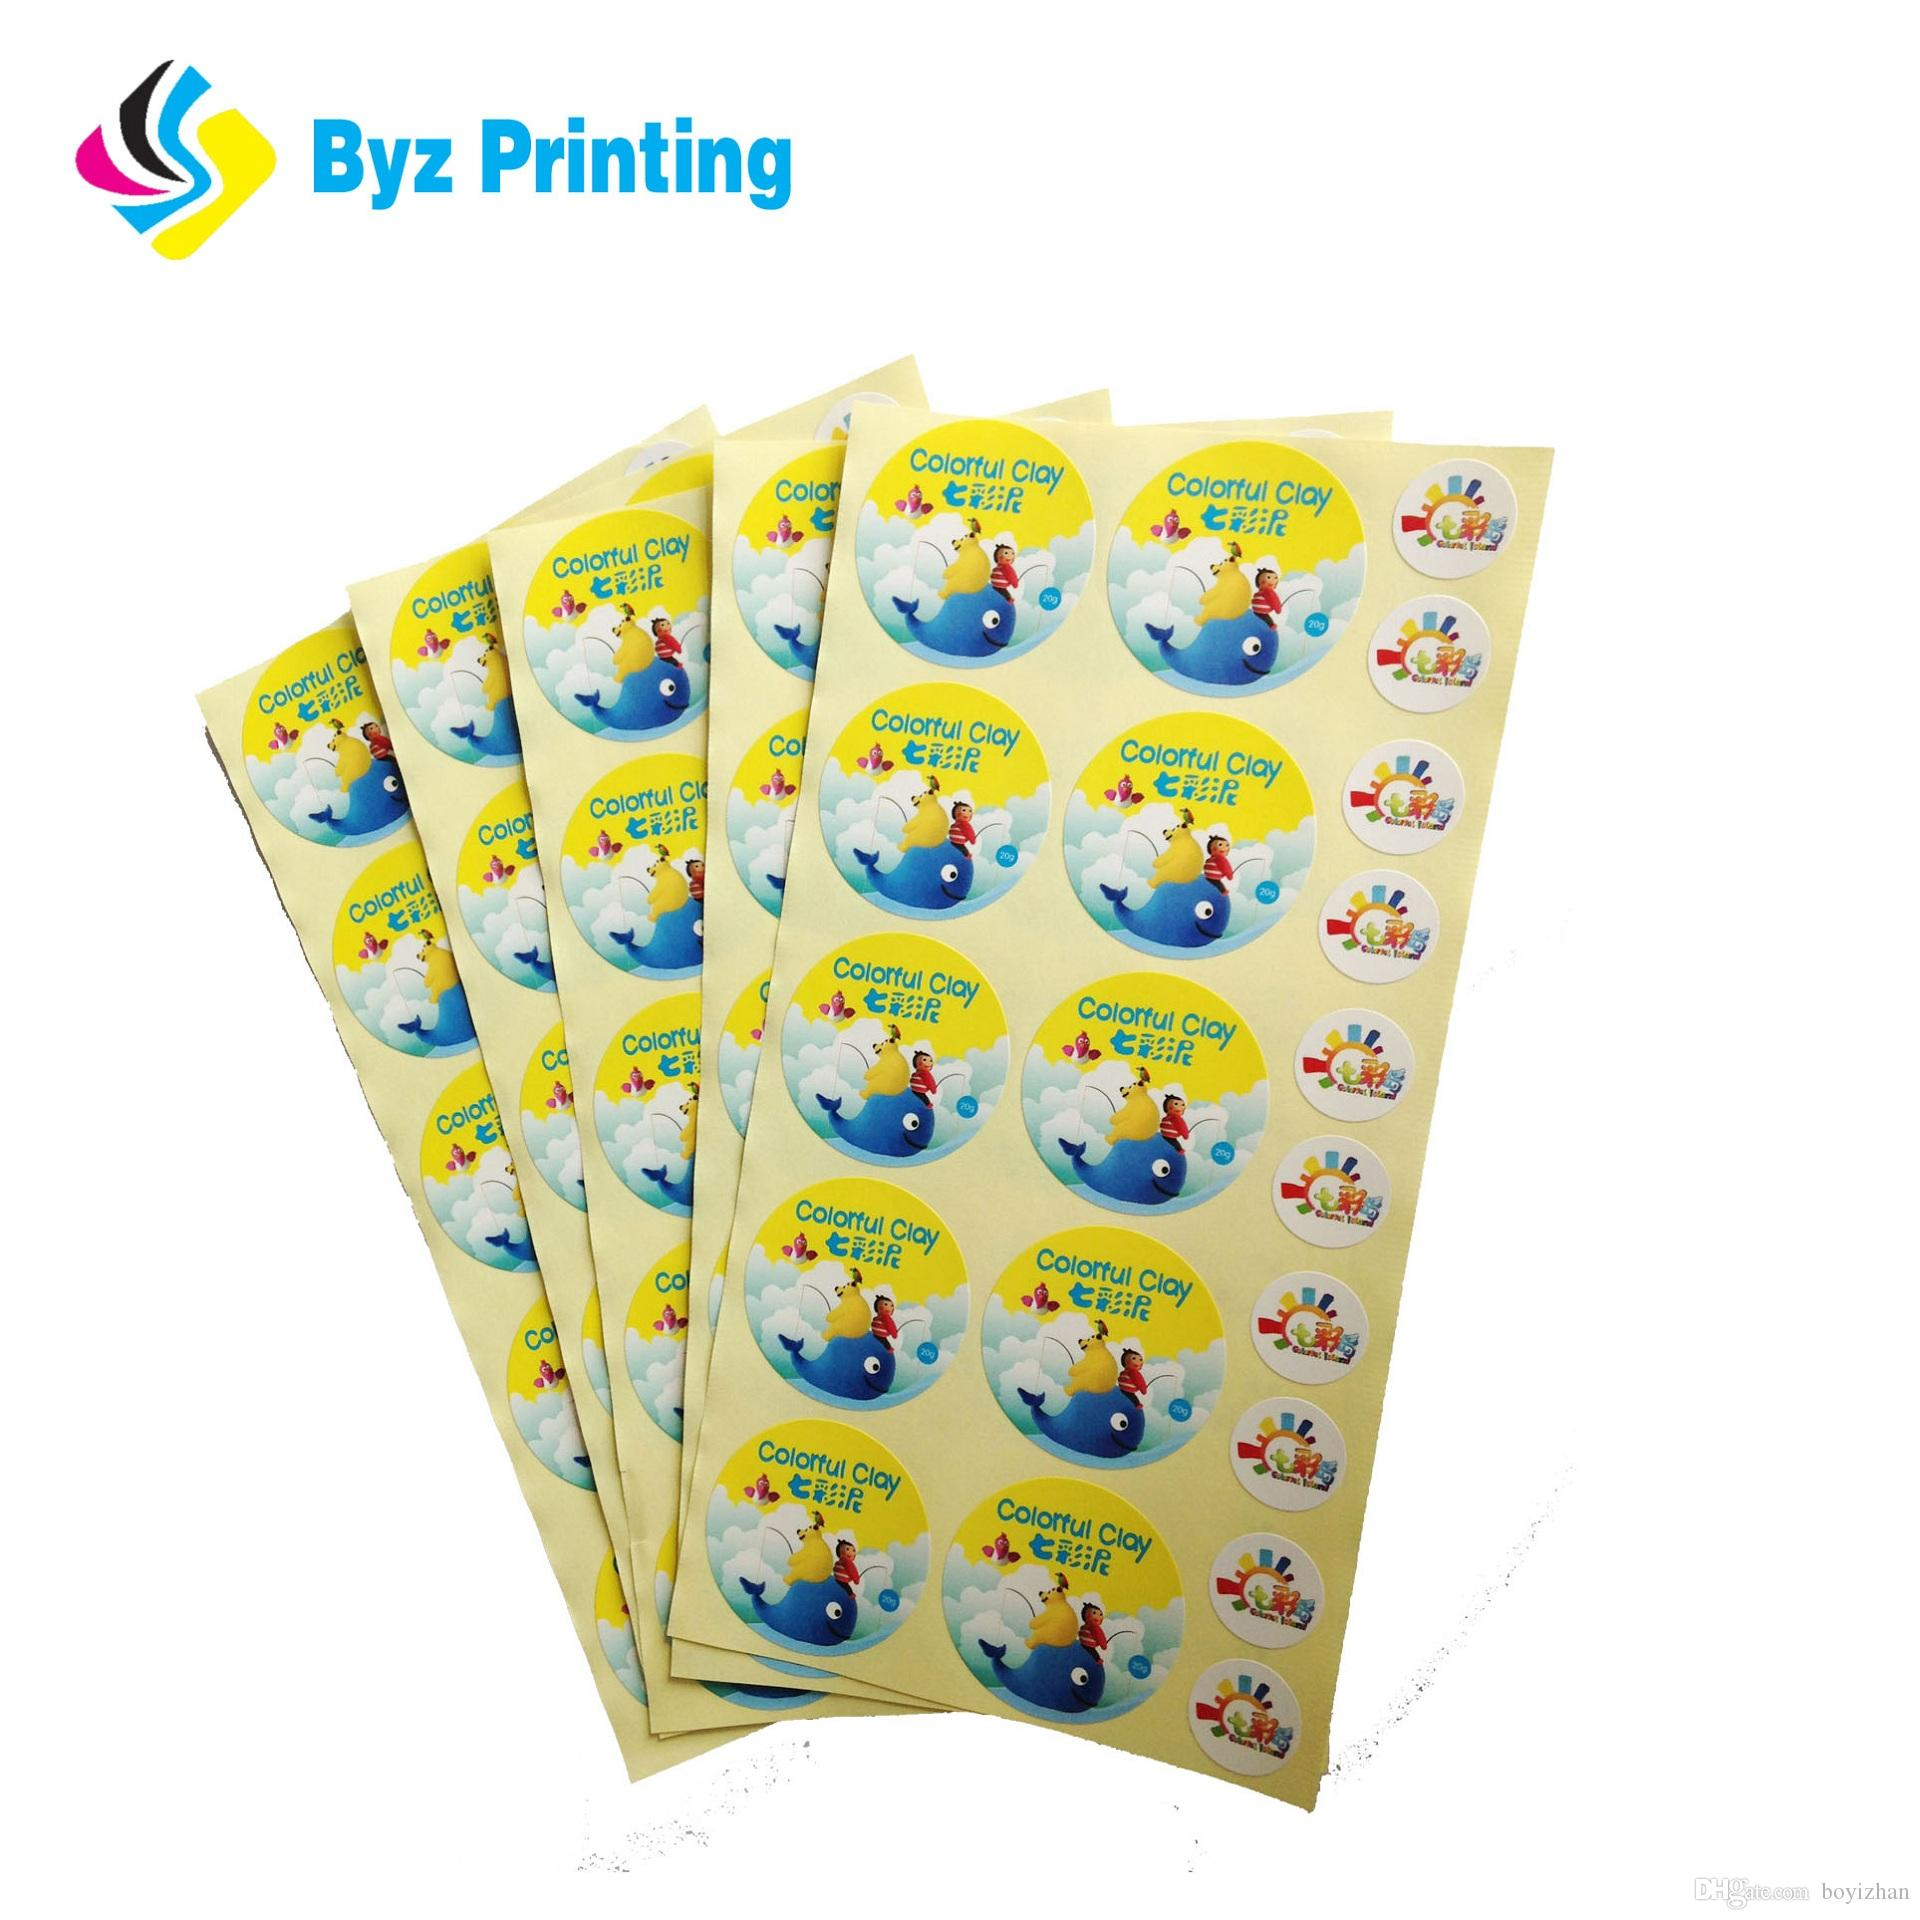 2019 2019 custom self adhesive label sticker printingfood bottle packaging sticker labelroll product private logo stickers printed from boyizhan